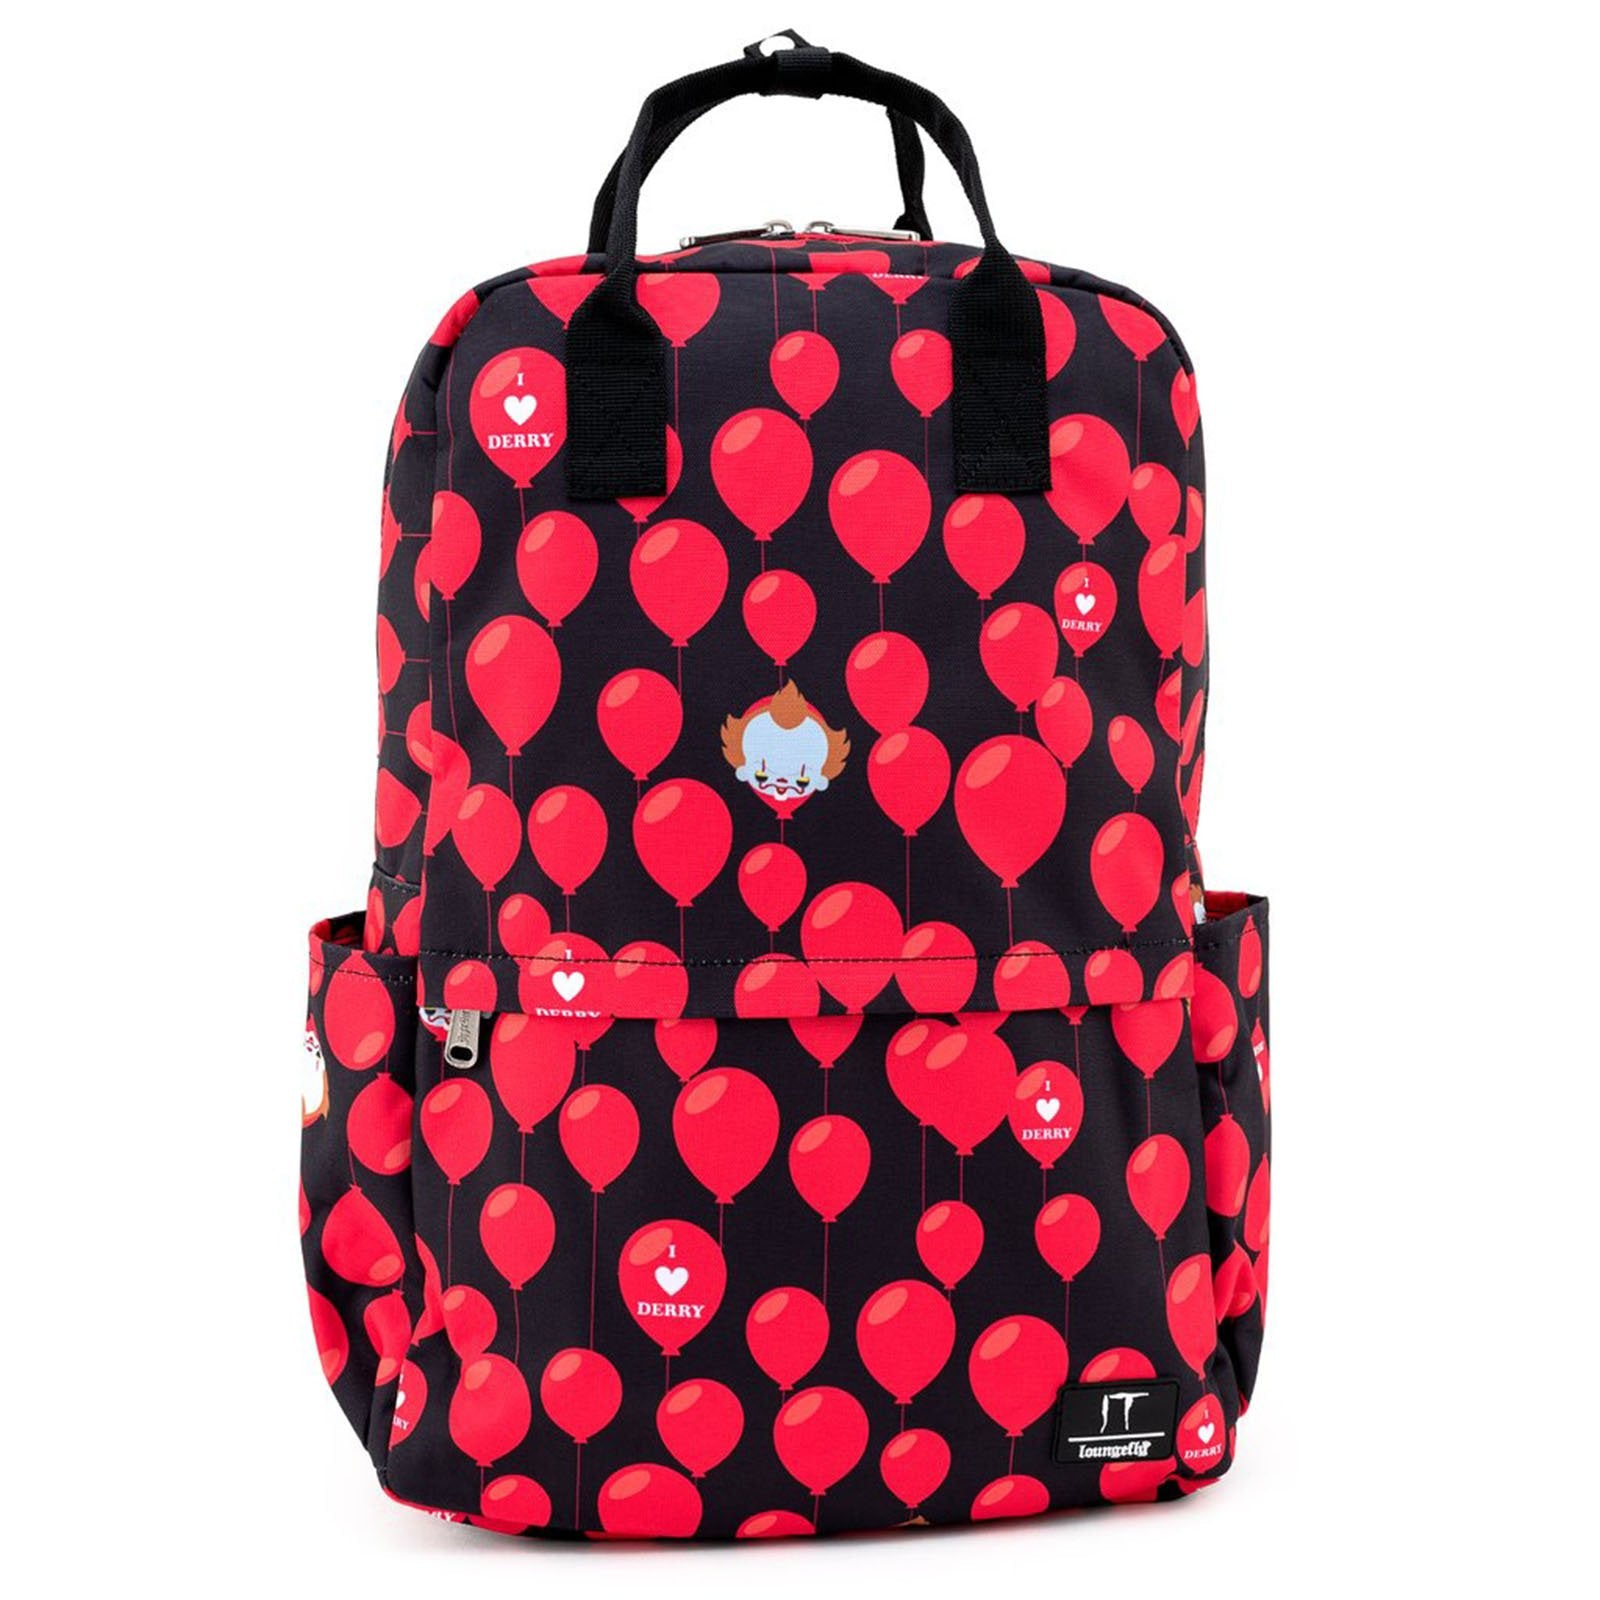 Loungefly IT I Heart Derry Balloons All Over Print Nylon Backpack NEW